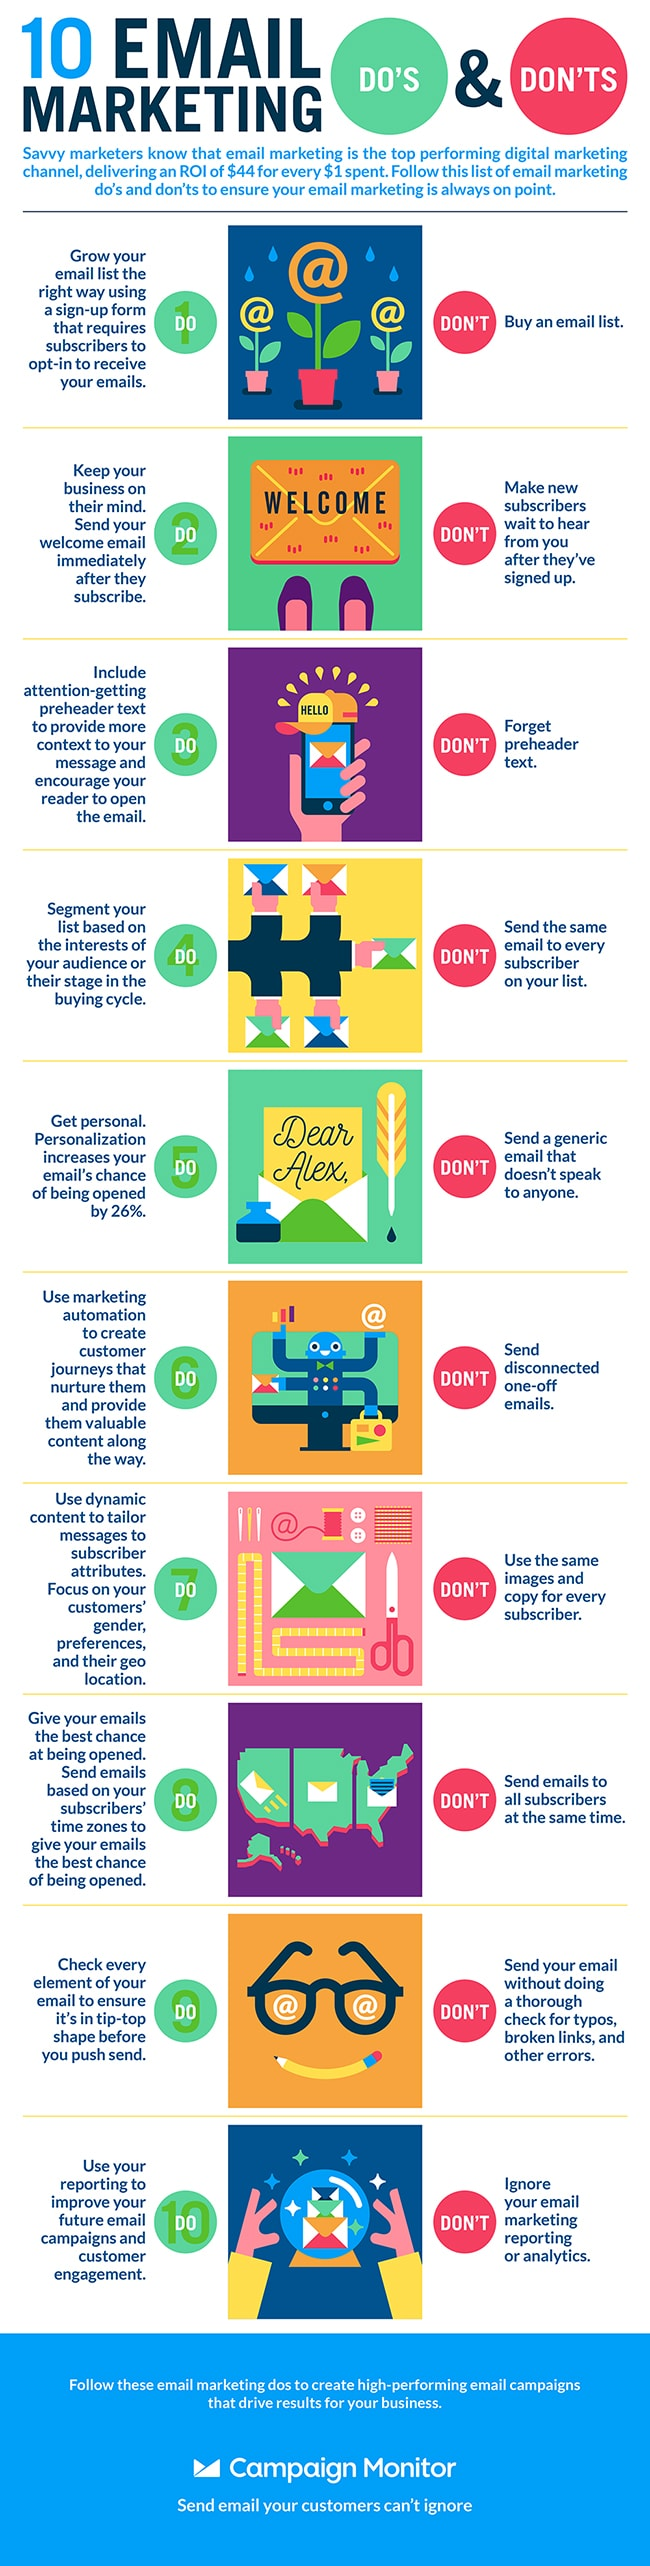 Email marketing Do's & Don't